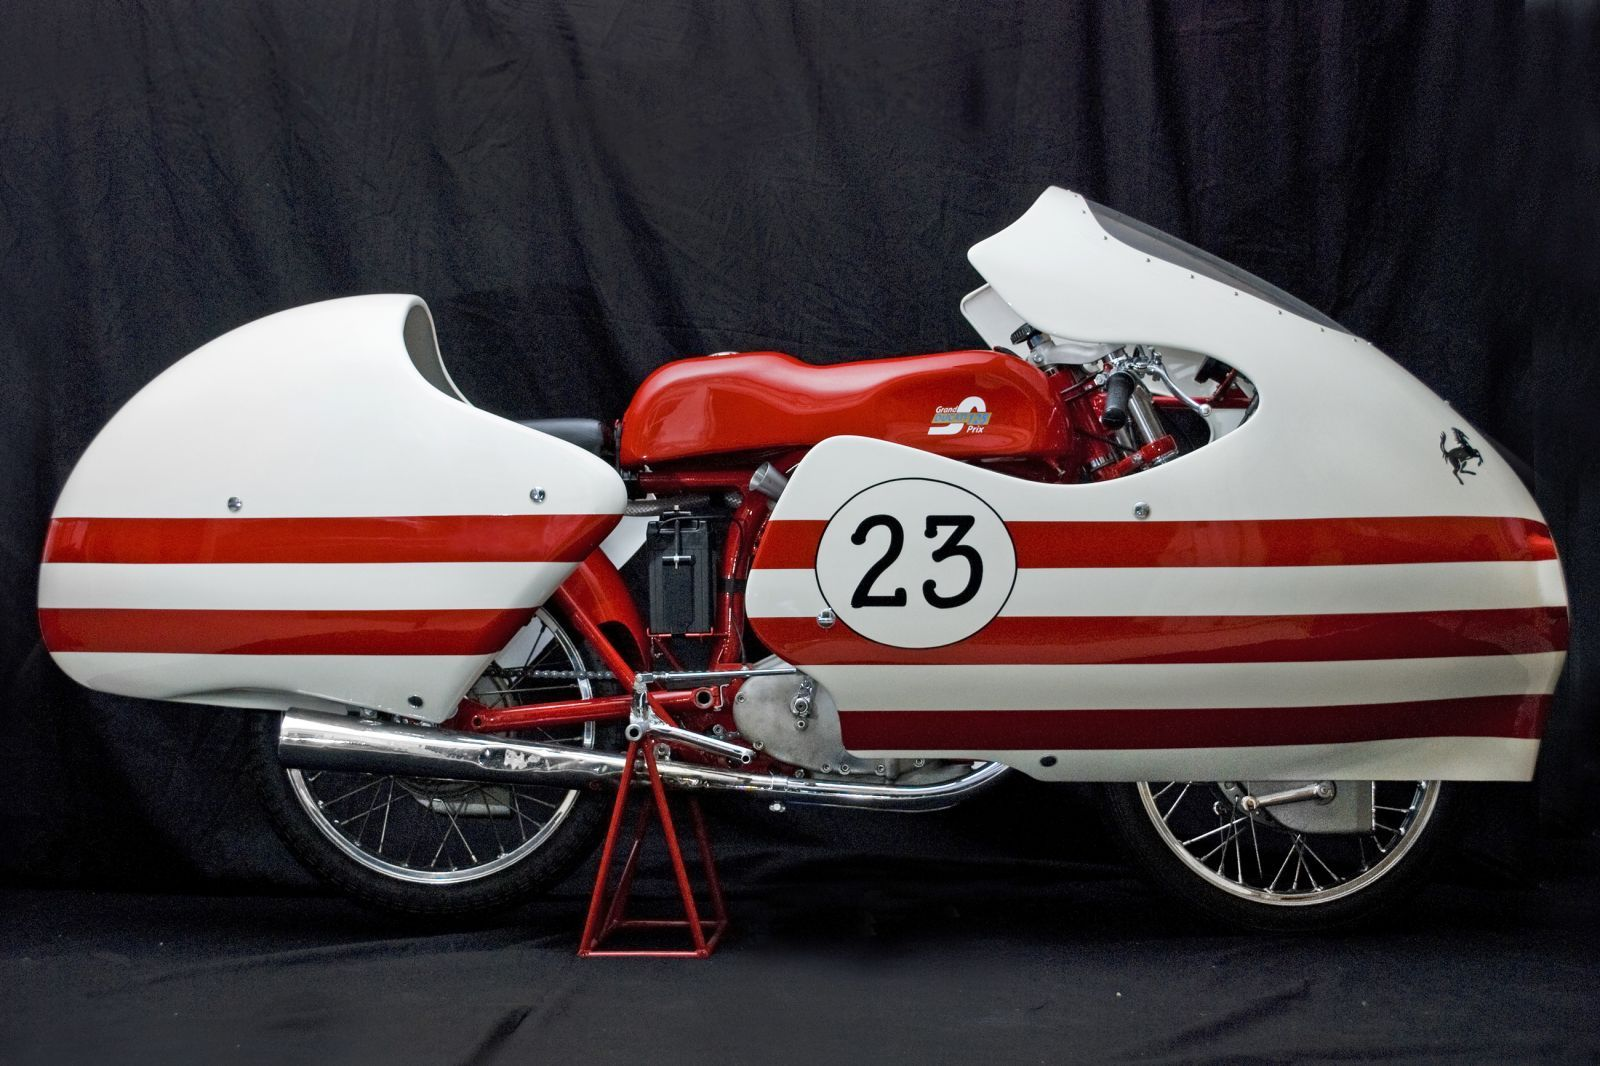 Moto DUCATI vintage de collection - moto scooter - Motos d'occasion